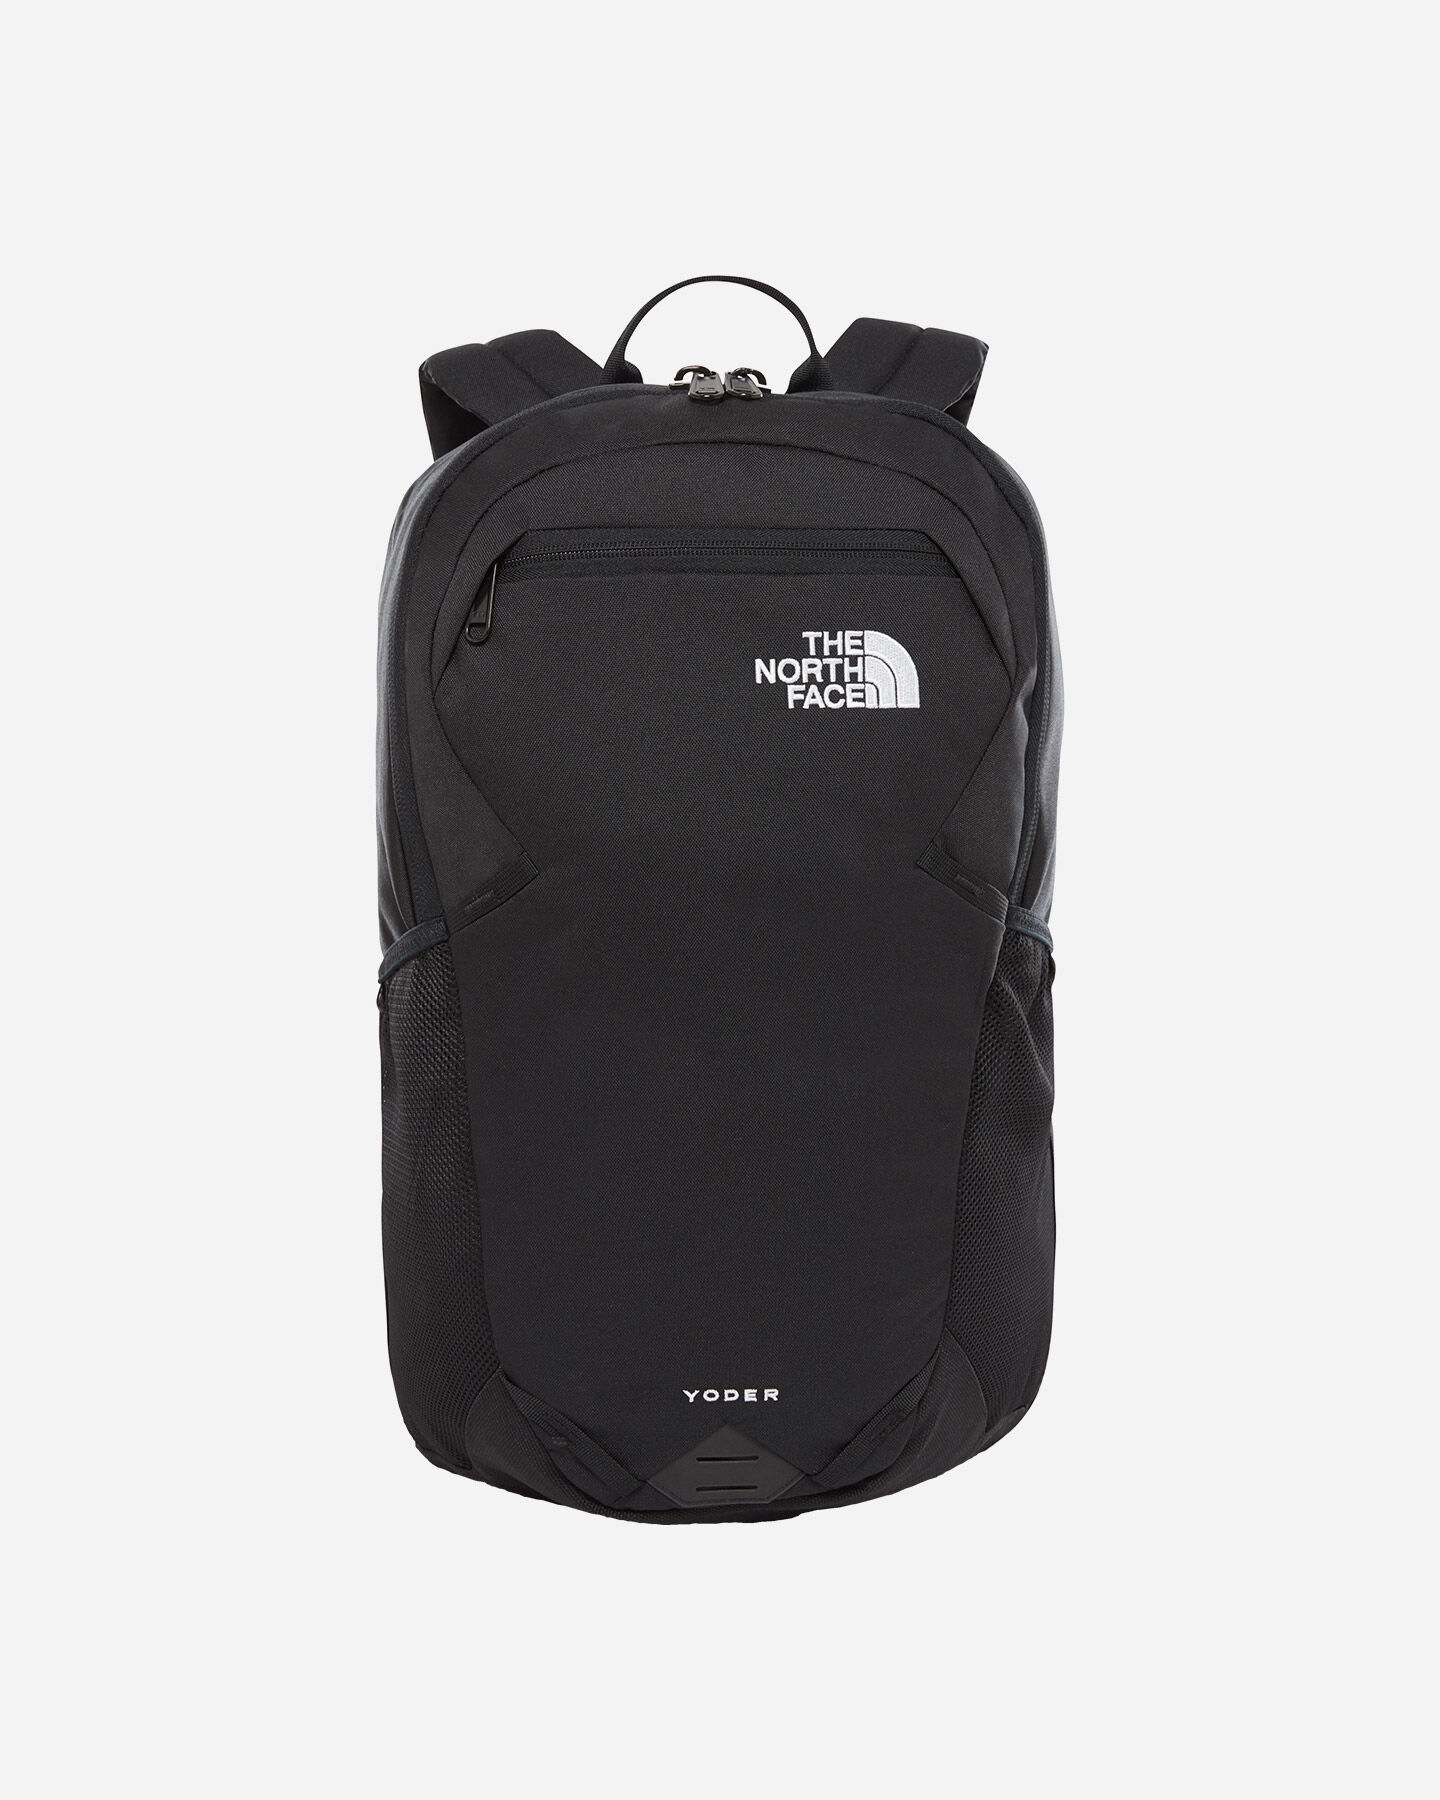 Zaino THE NORTH FACE YODER S2025266|JK3|OS scatto 0